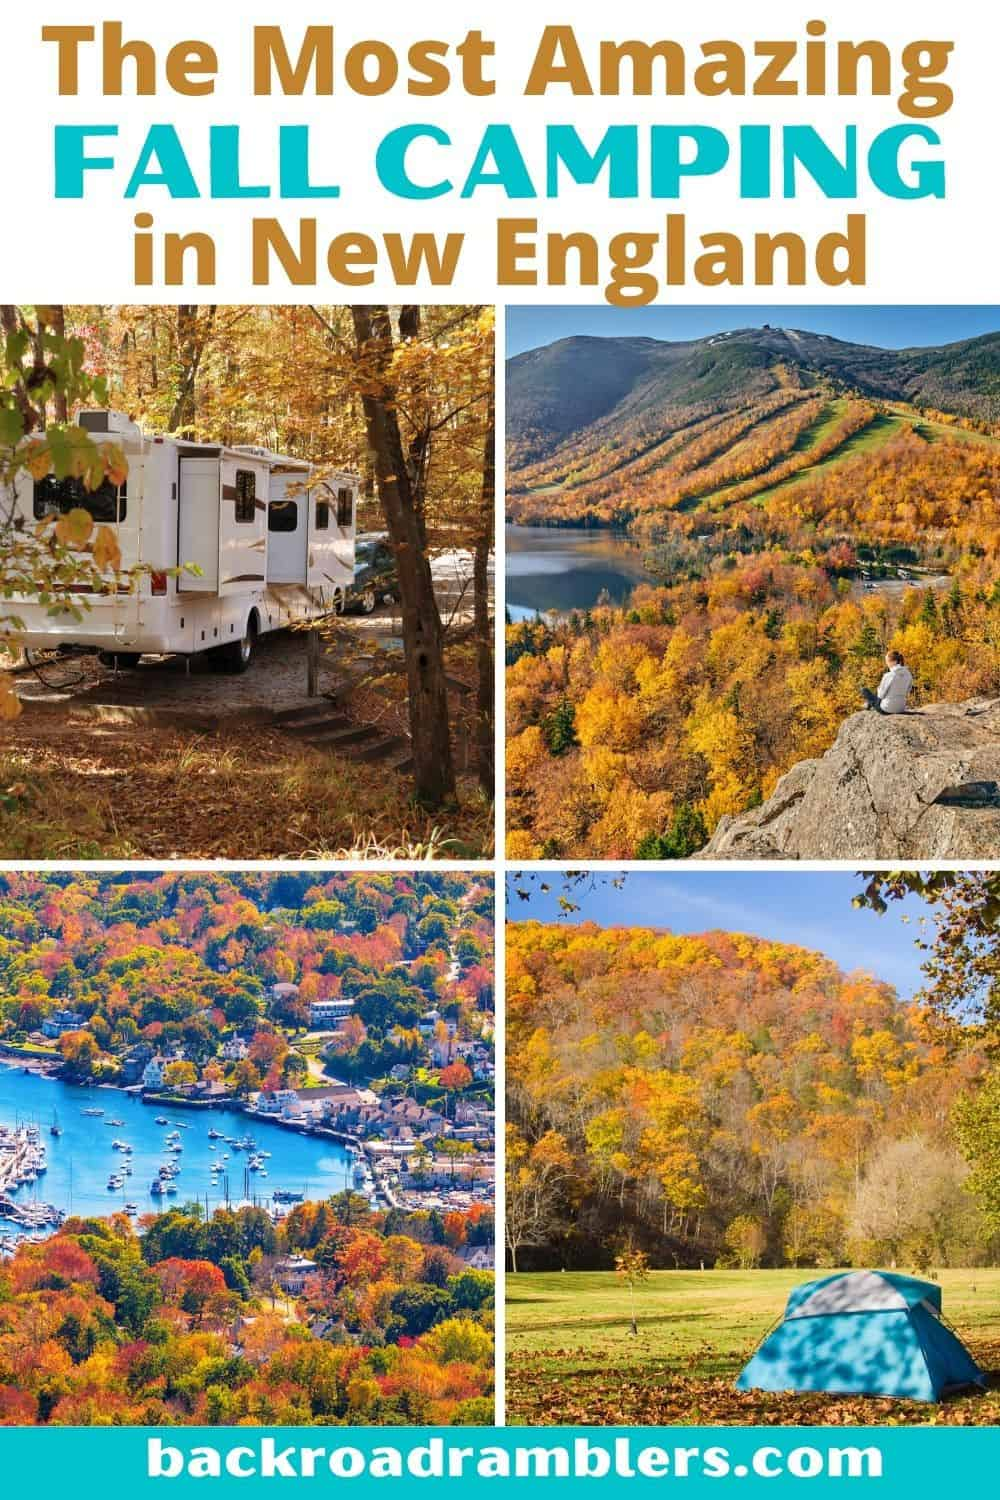 A collage of fall camping photos. Text overlay reads: The Most Amazing Fall Camping in New England.